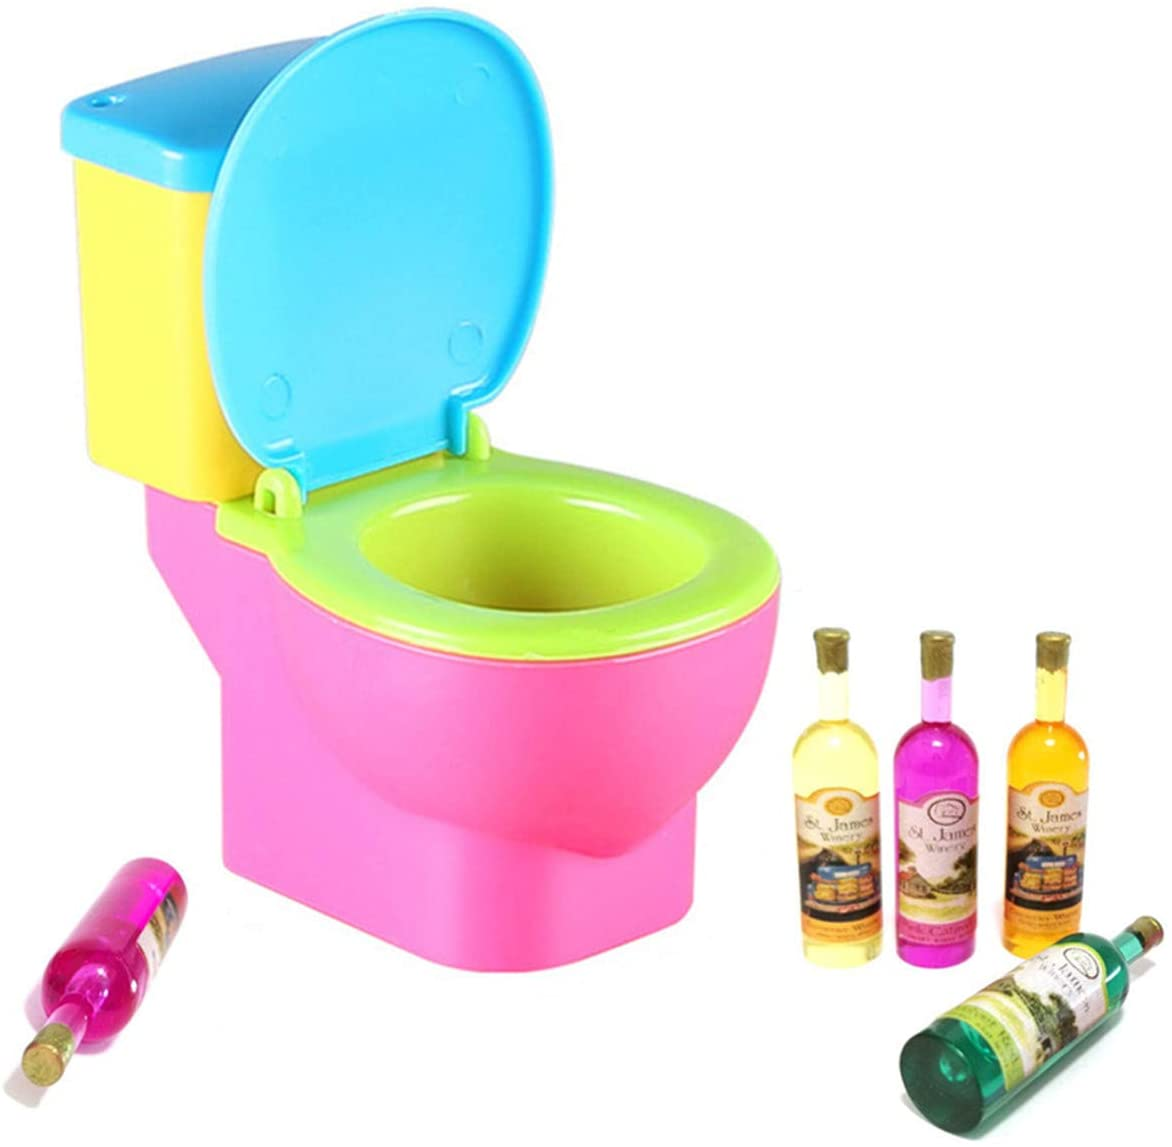 Funny Toilet Toy Cake Topper Miniature Toilet Colorful Small Toilet with Miniature Bottles for Birthday Bachelorette Wedding Party Cake Decorations (Small Toilet Random Color)